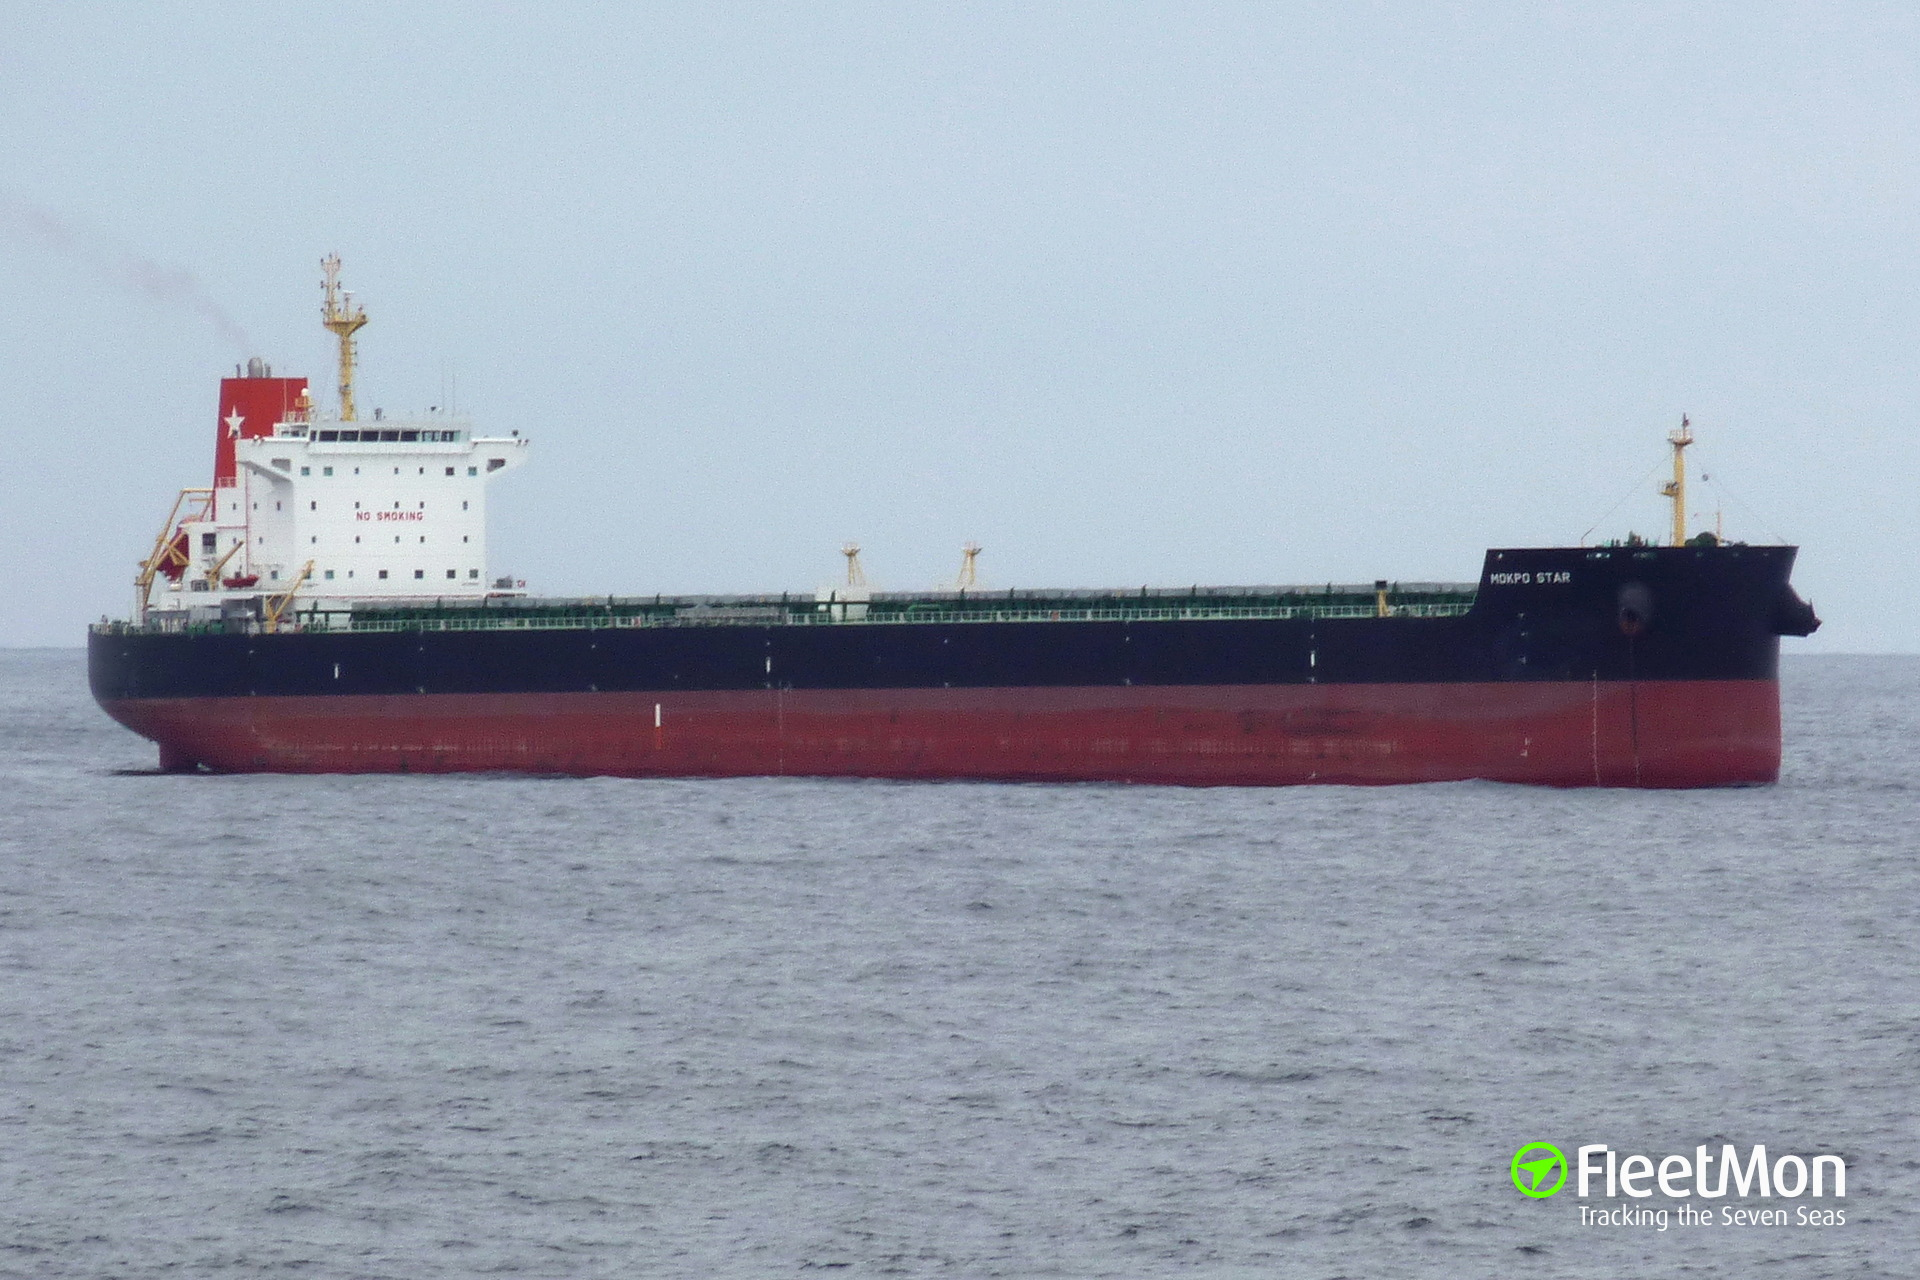 Bulk carrier Mokpo Star grounded and refloated in Columbia River